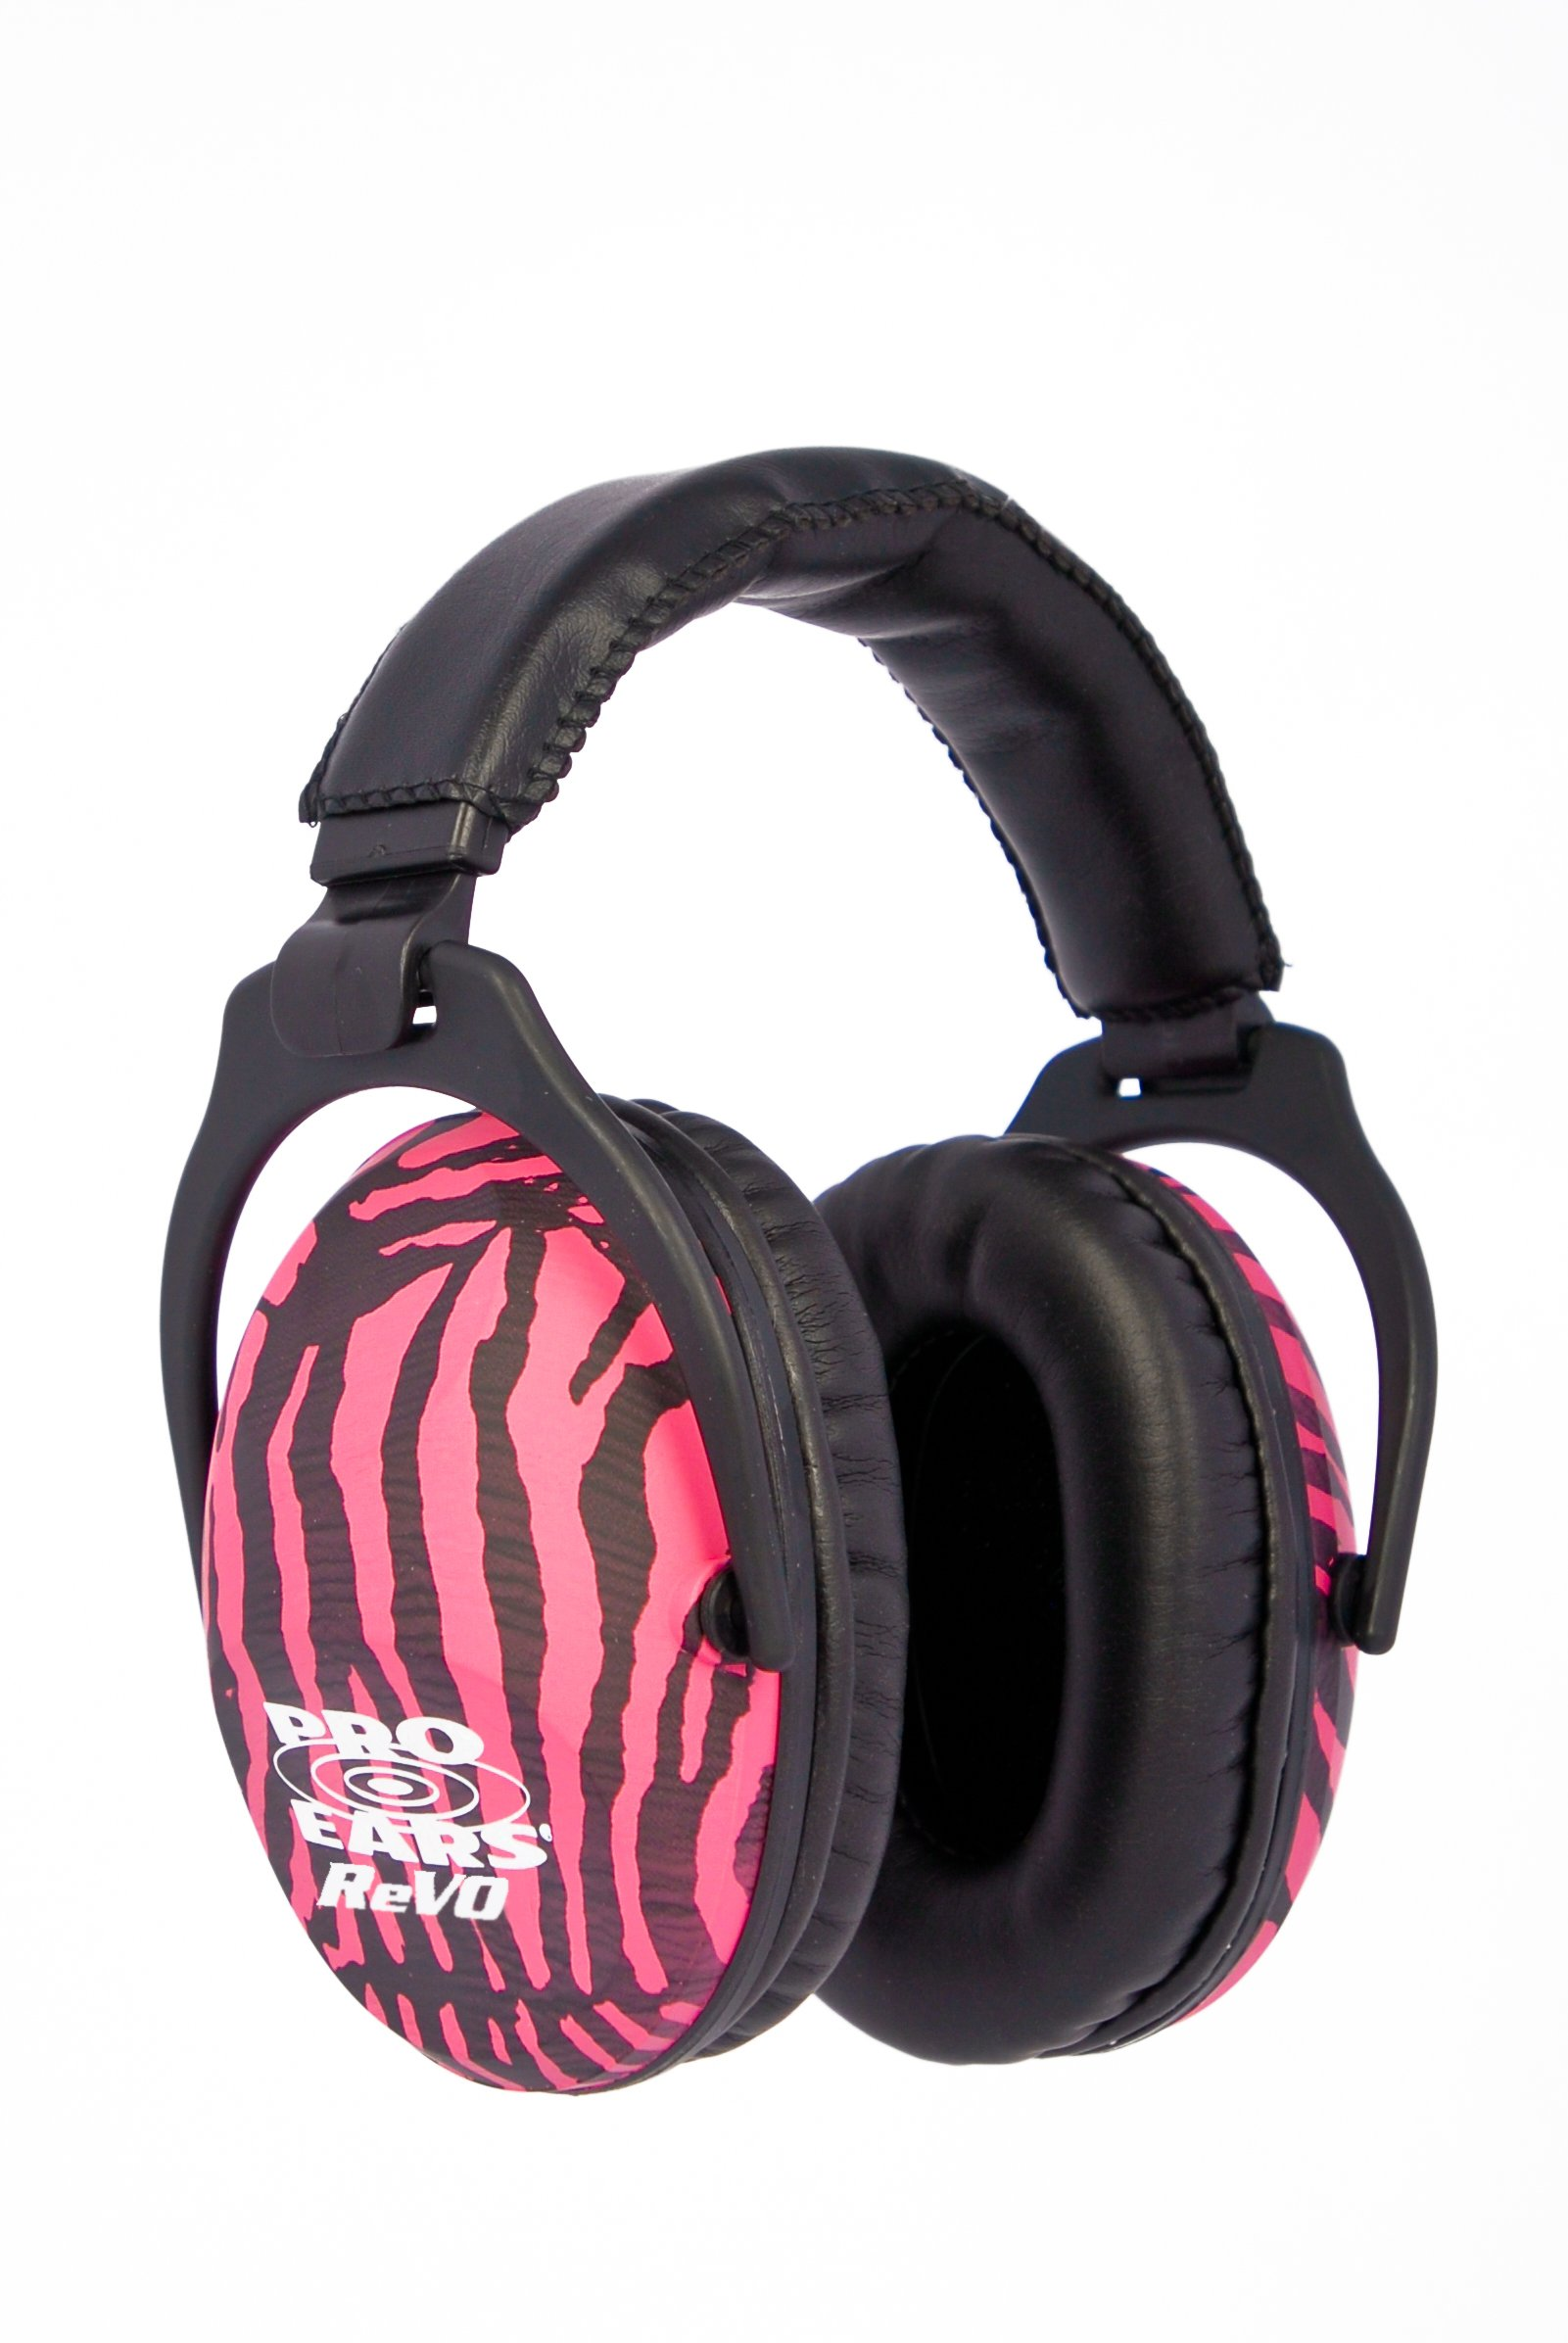 Pro Ears - ReVO - Hearing Protection - NRR 25 - Youth and Women Ear Muffs - Pink Zebra by Pro Ears (Image #1)